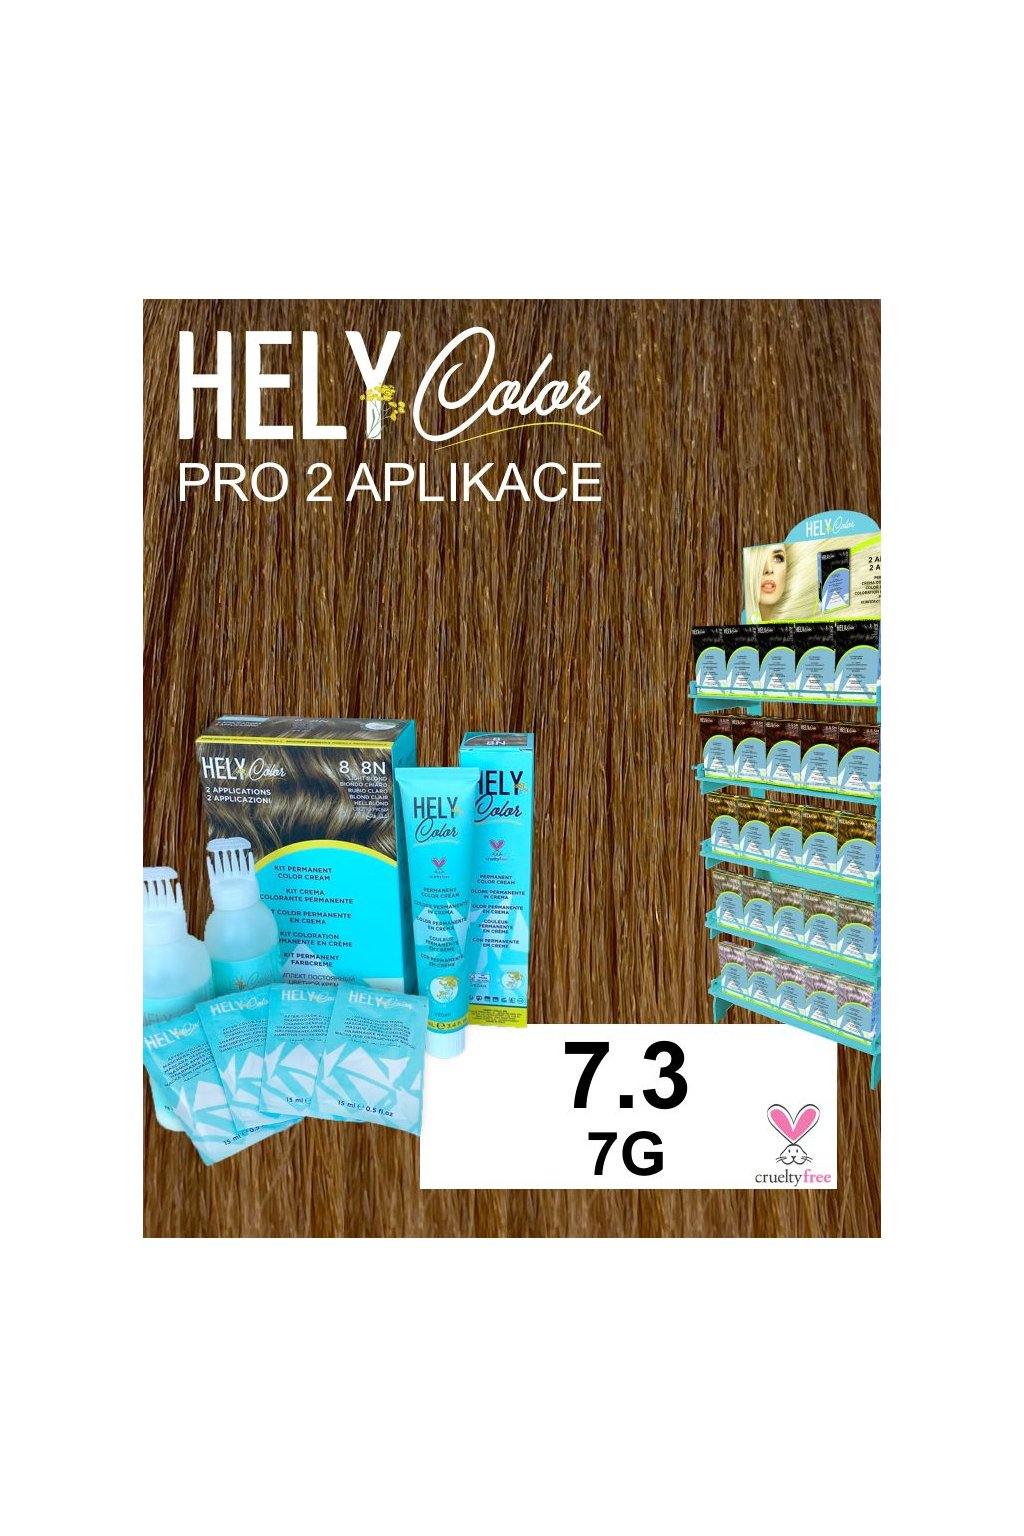 7 3 helycolor